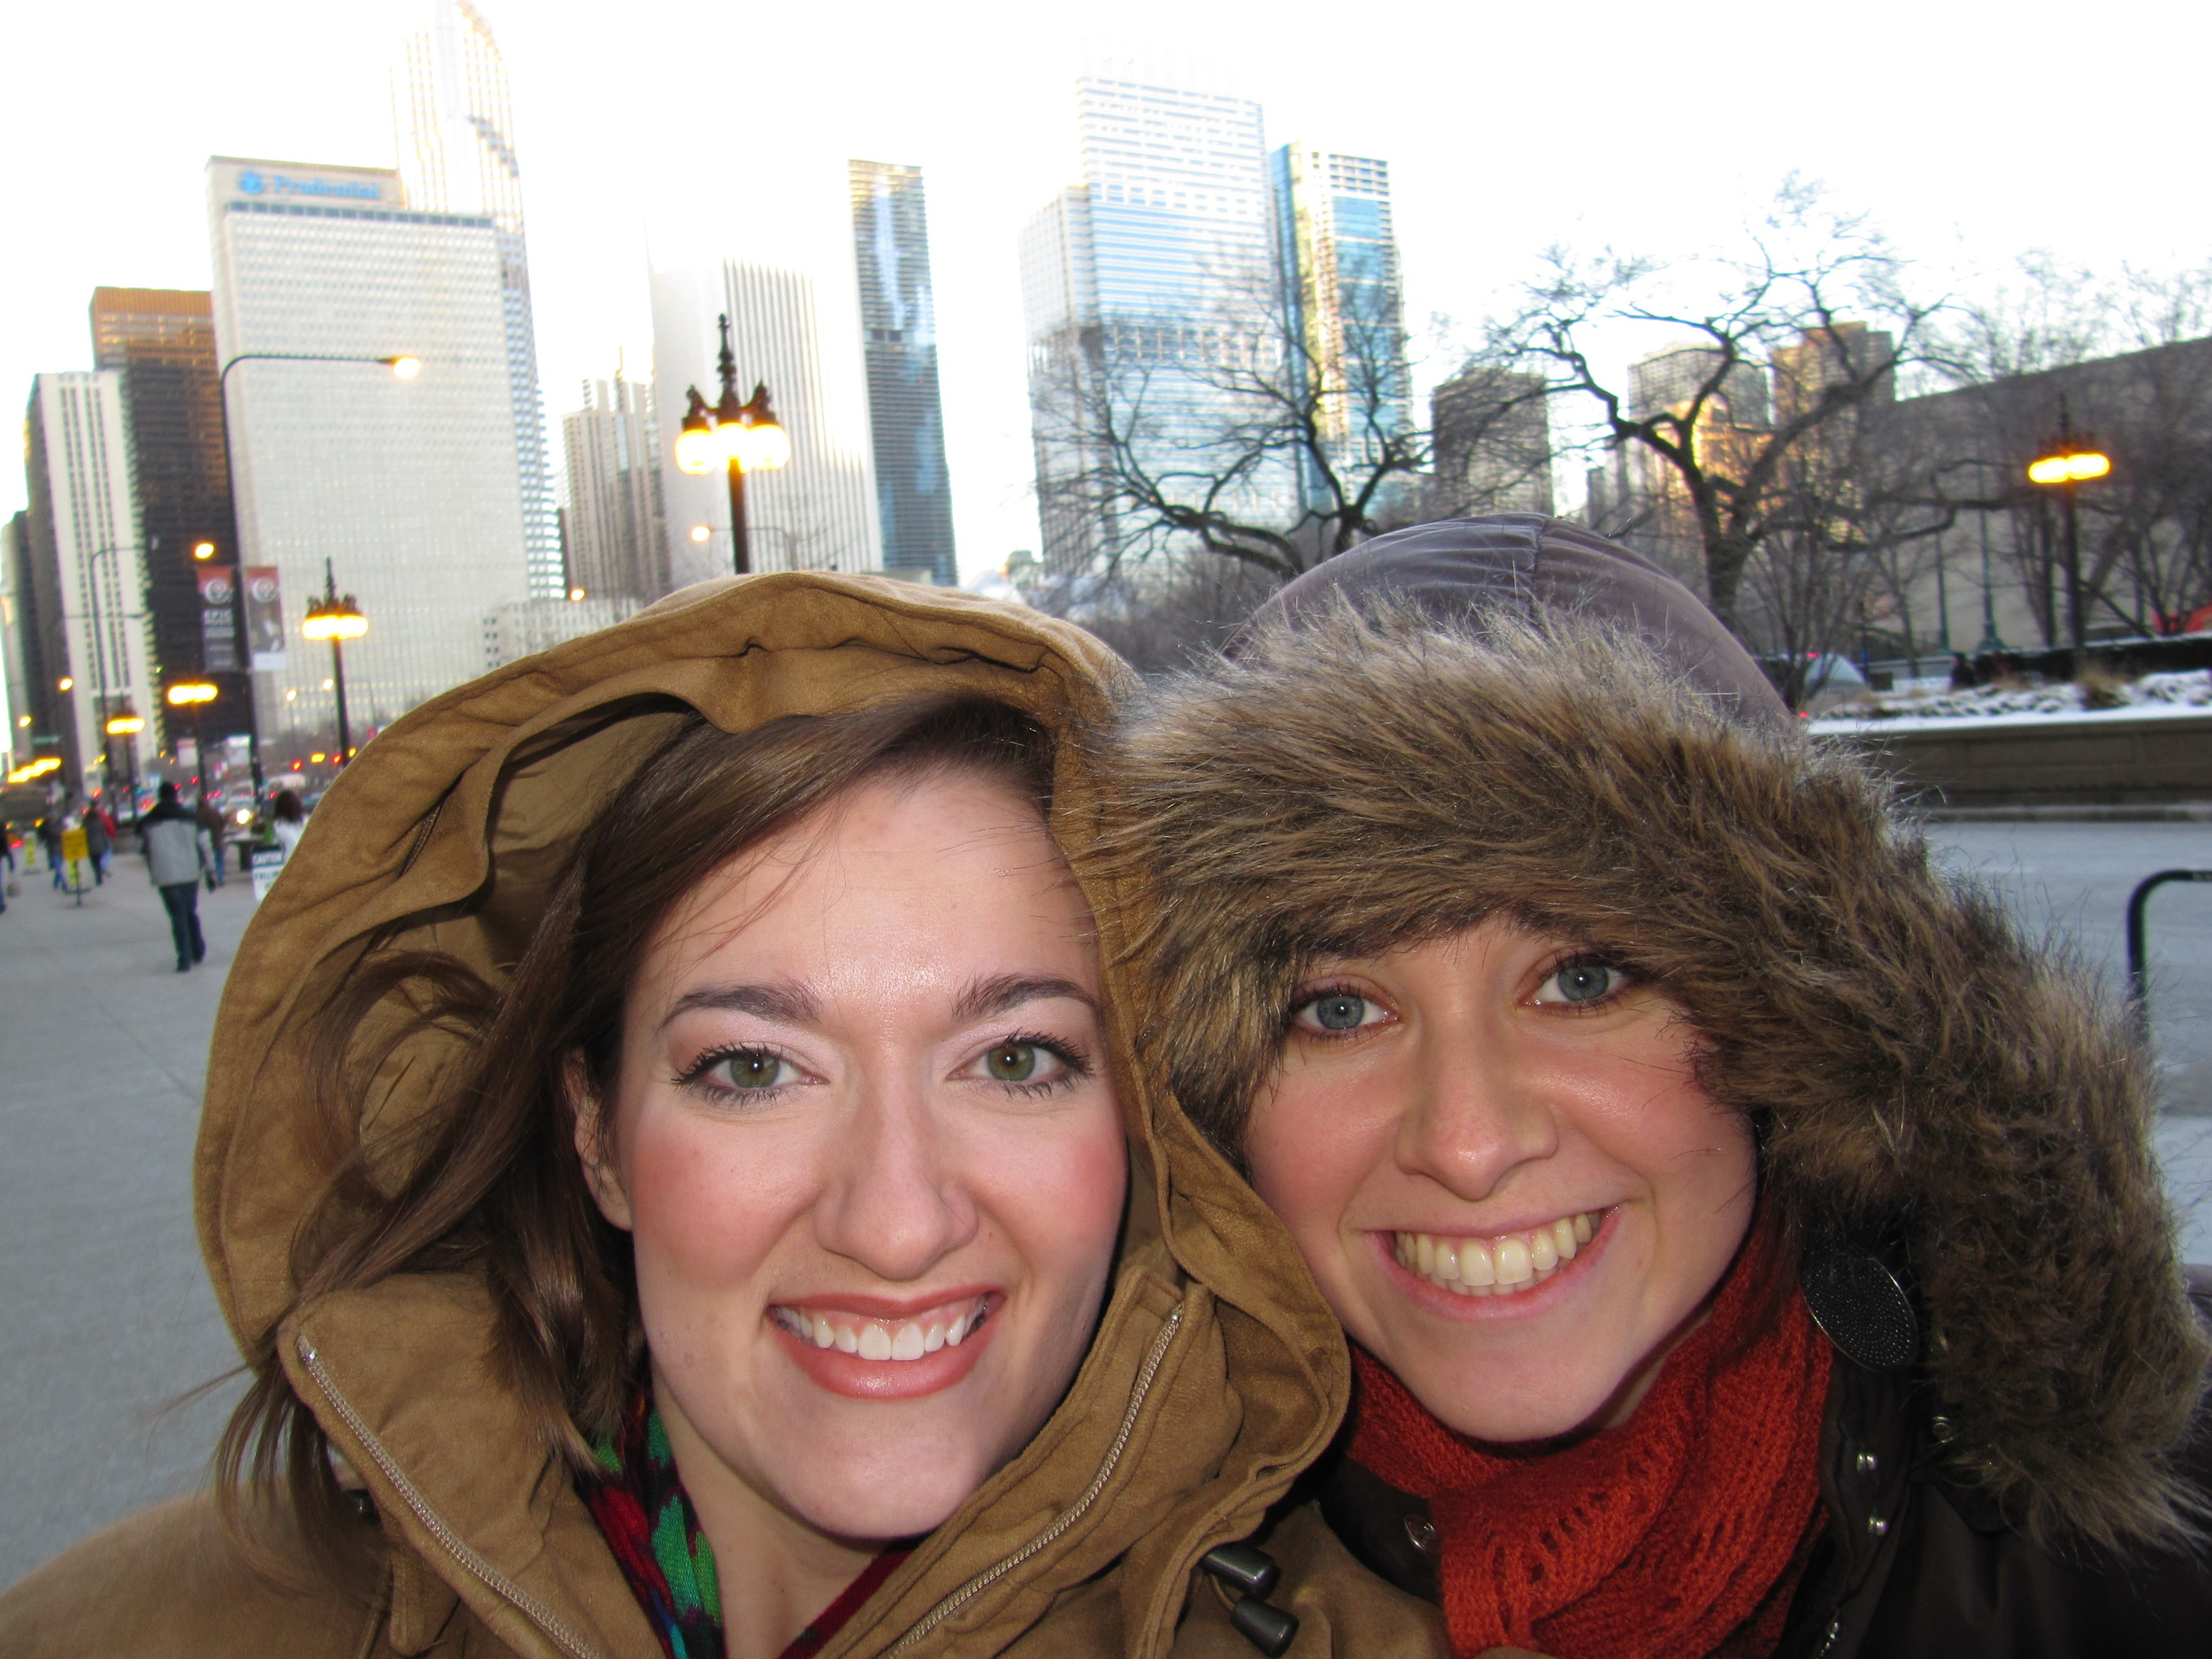 Almost 25 years of friendship under our belts. Or under our puffy coats?